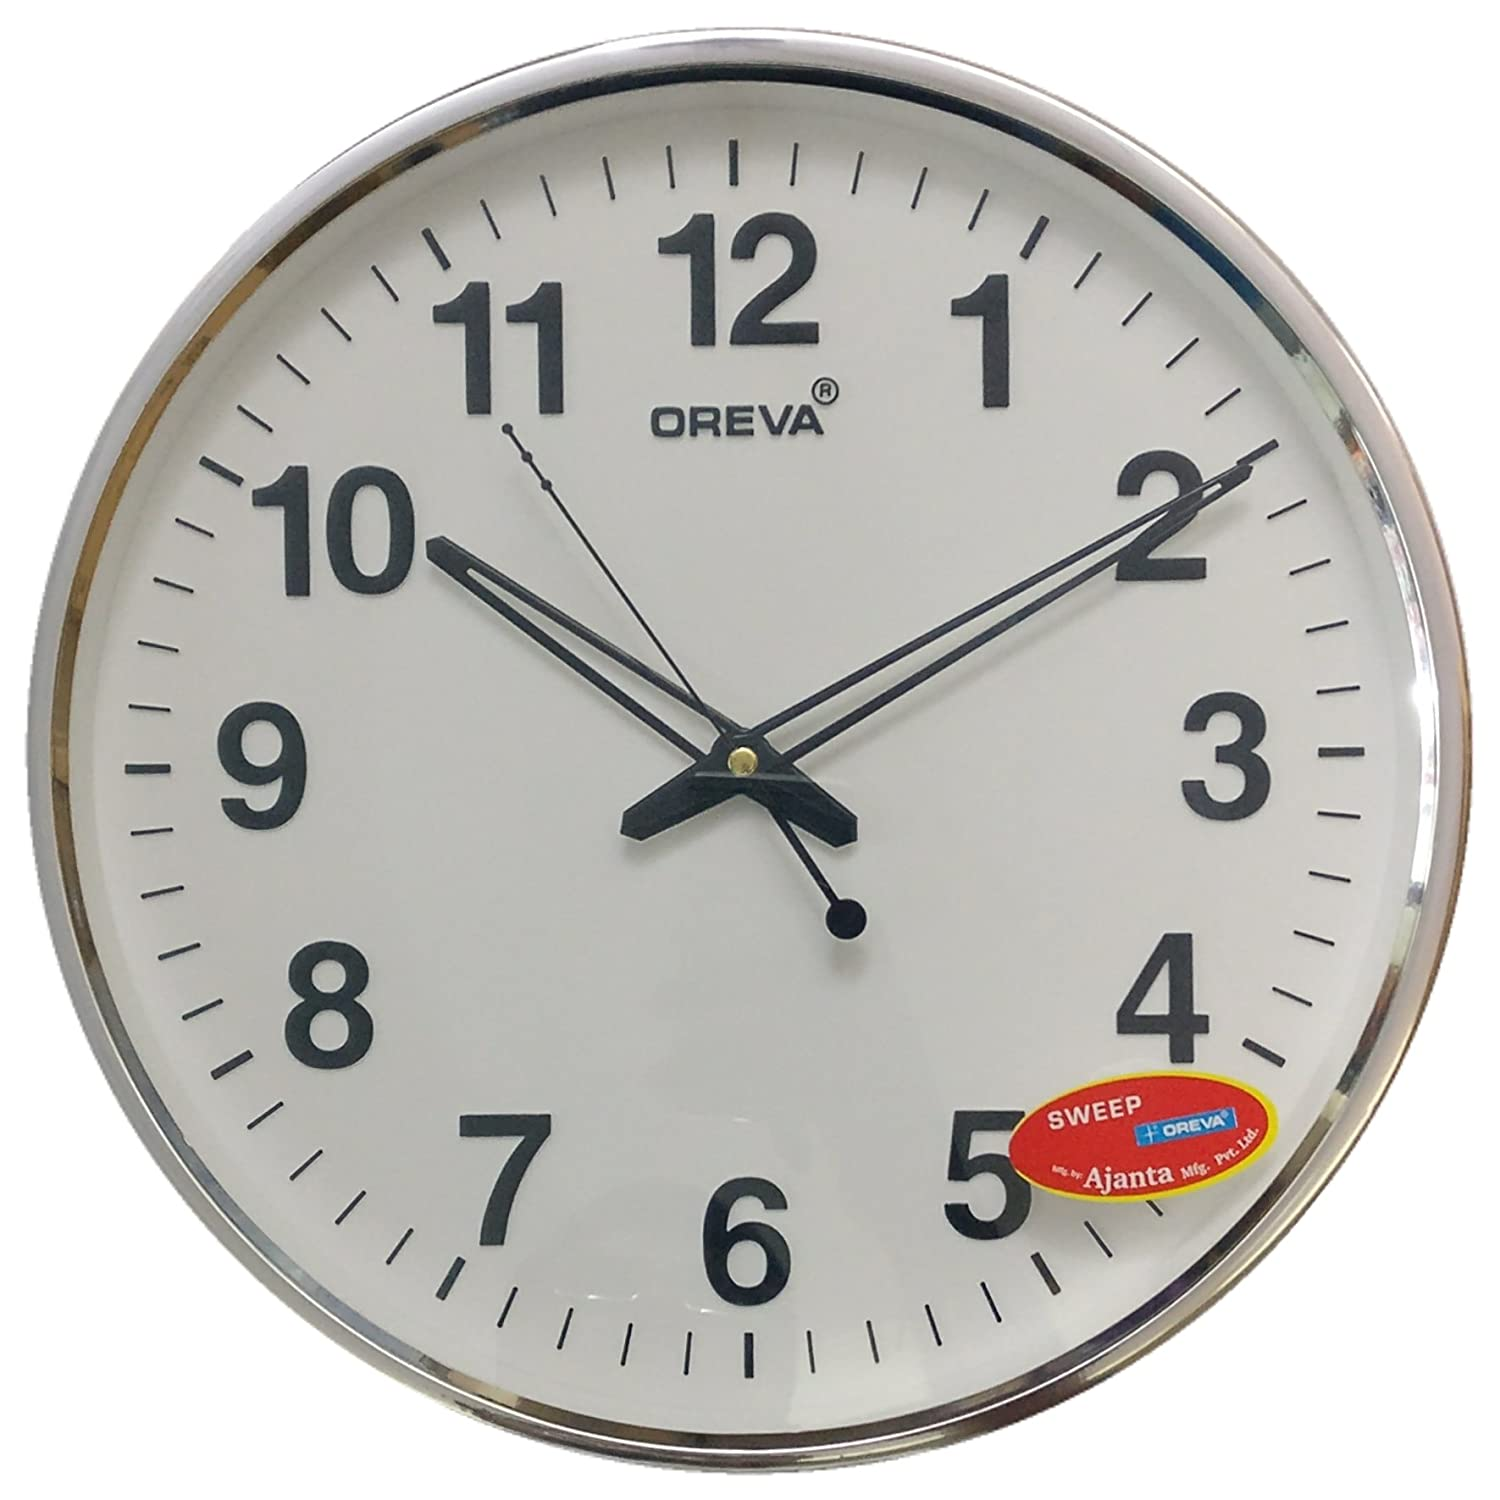 Buy ajanta oreva silent movement 32 cm x 32 cm plastic round buy ajanta oreva silent movement 32 cm x 32 cm plastic round shape wall clock for home and office white 168 online at low prices in india amazon amipublicfo Images